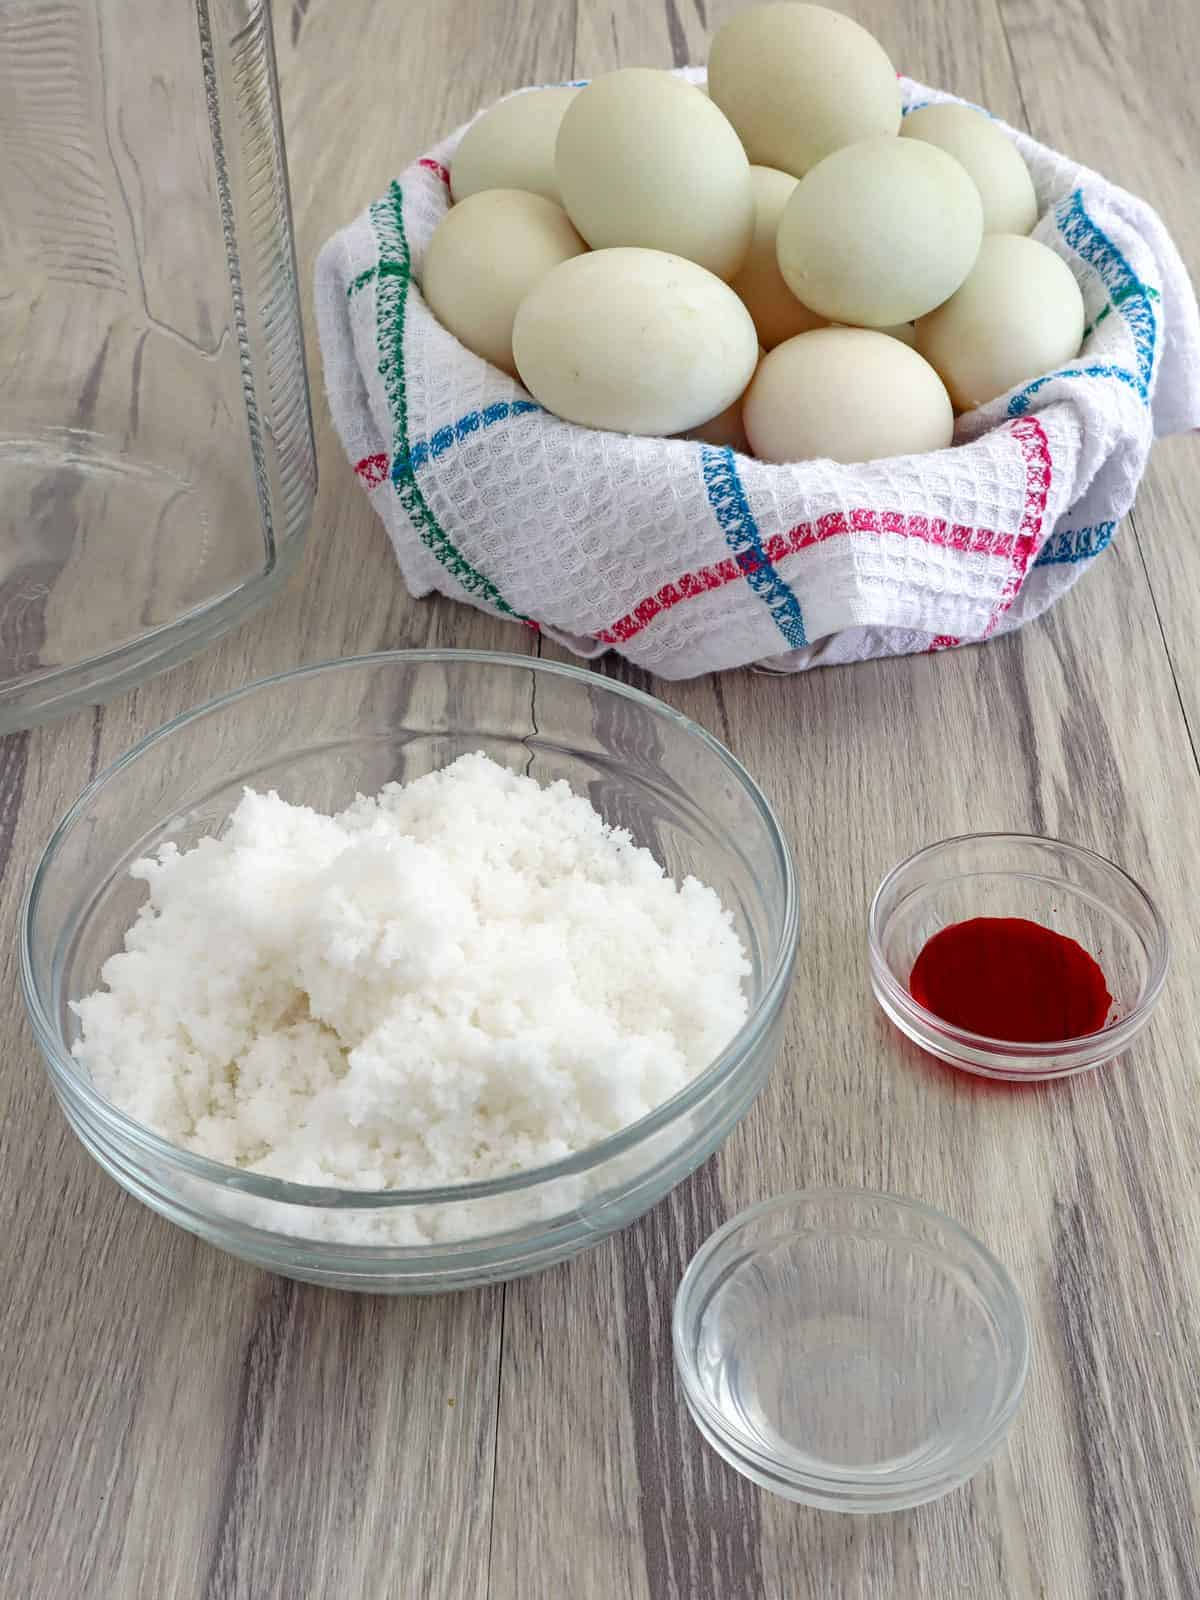 duck eggs, salt, water, vinegar, and red food coloring in individual bowls